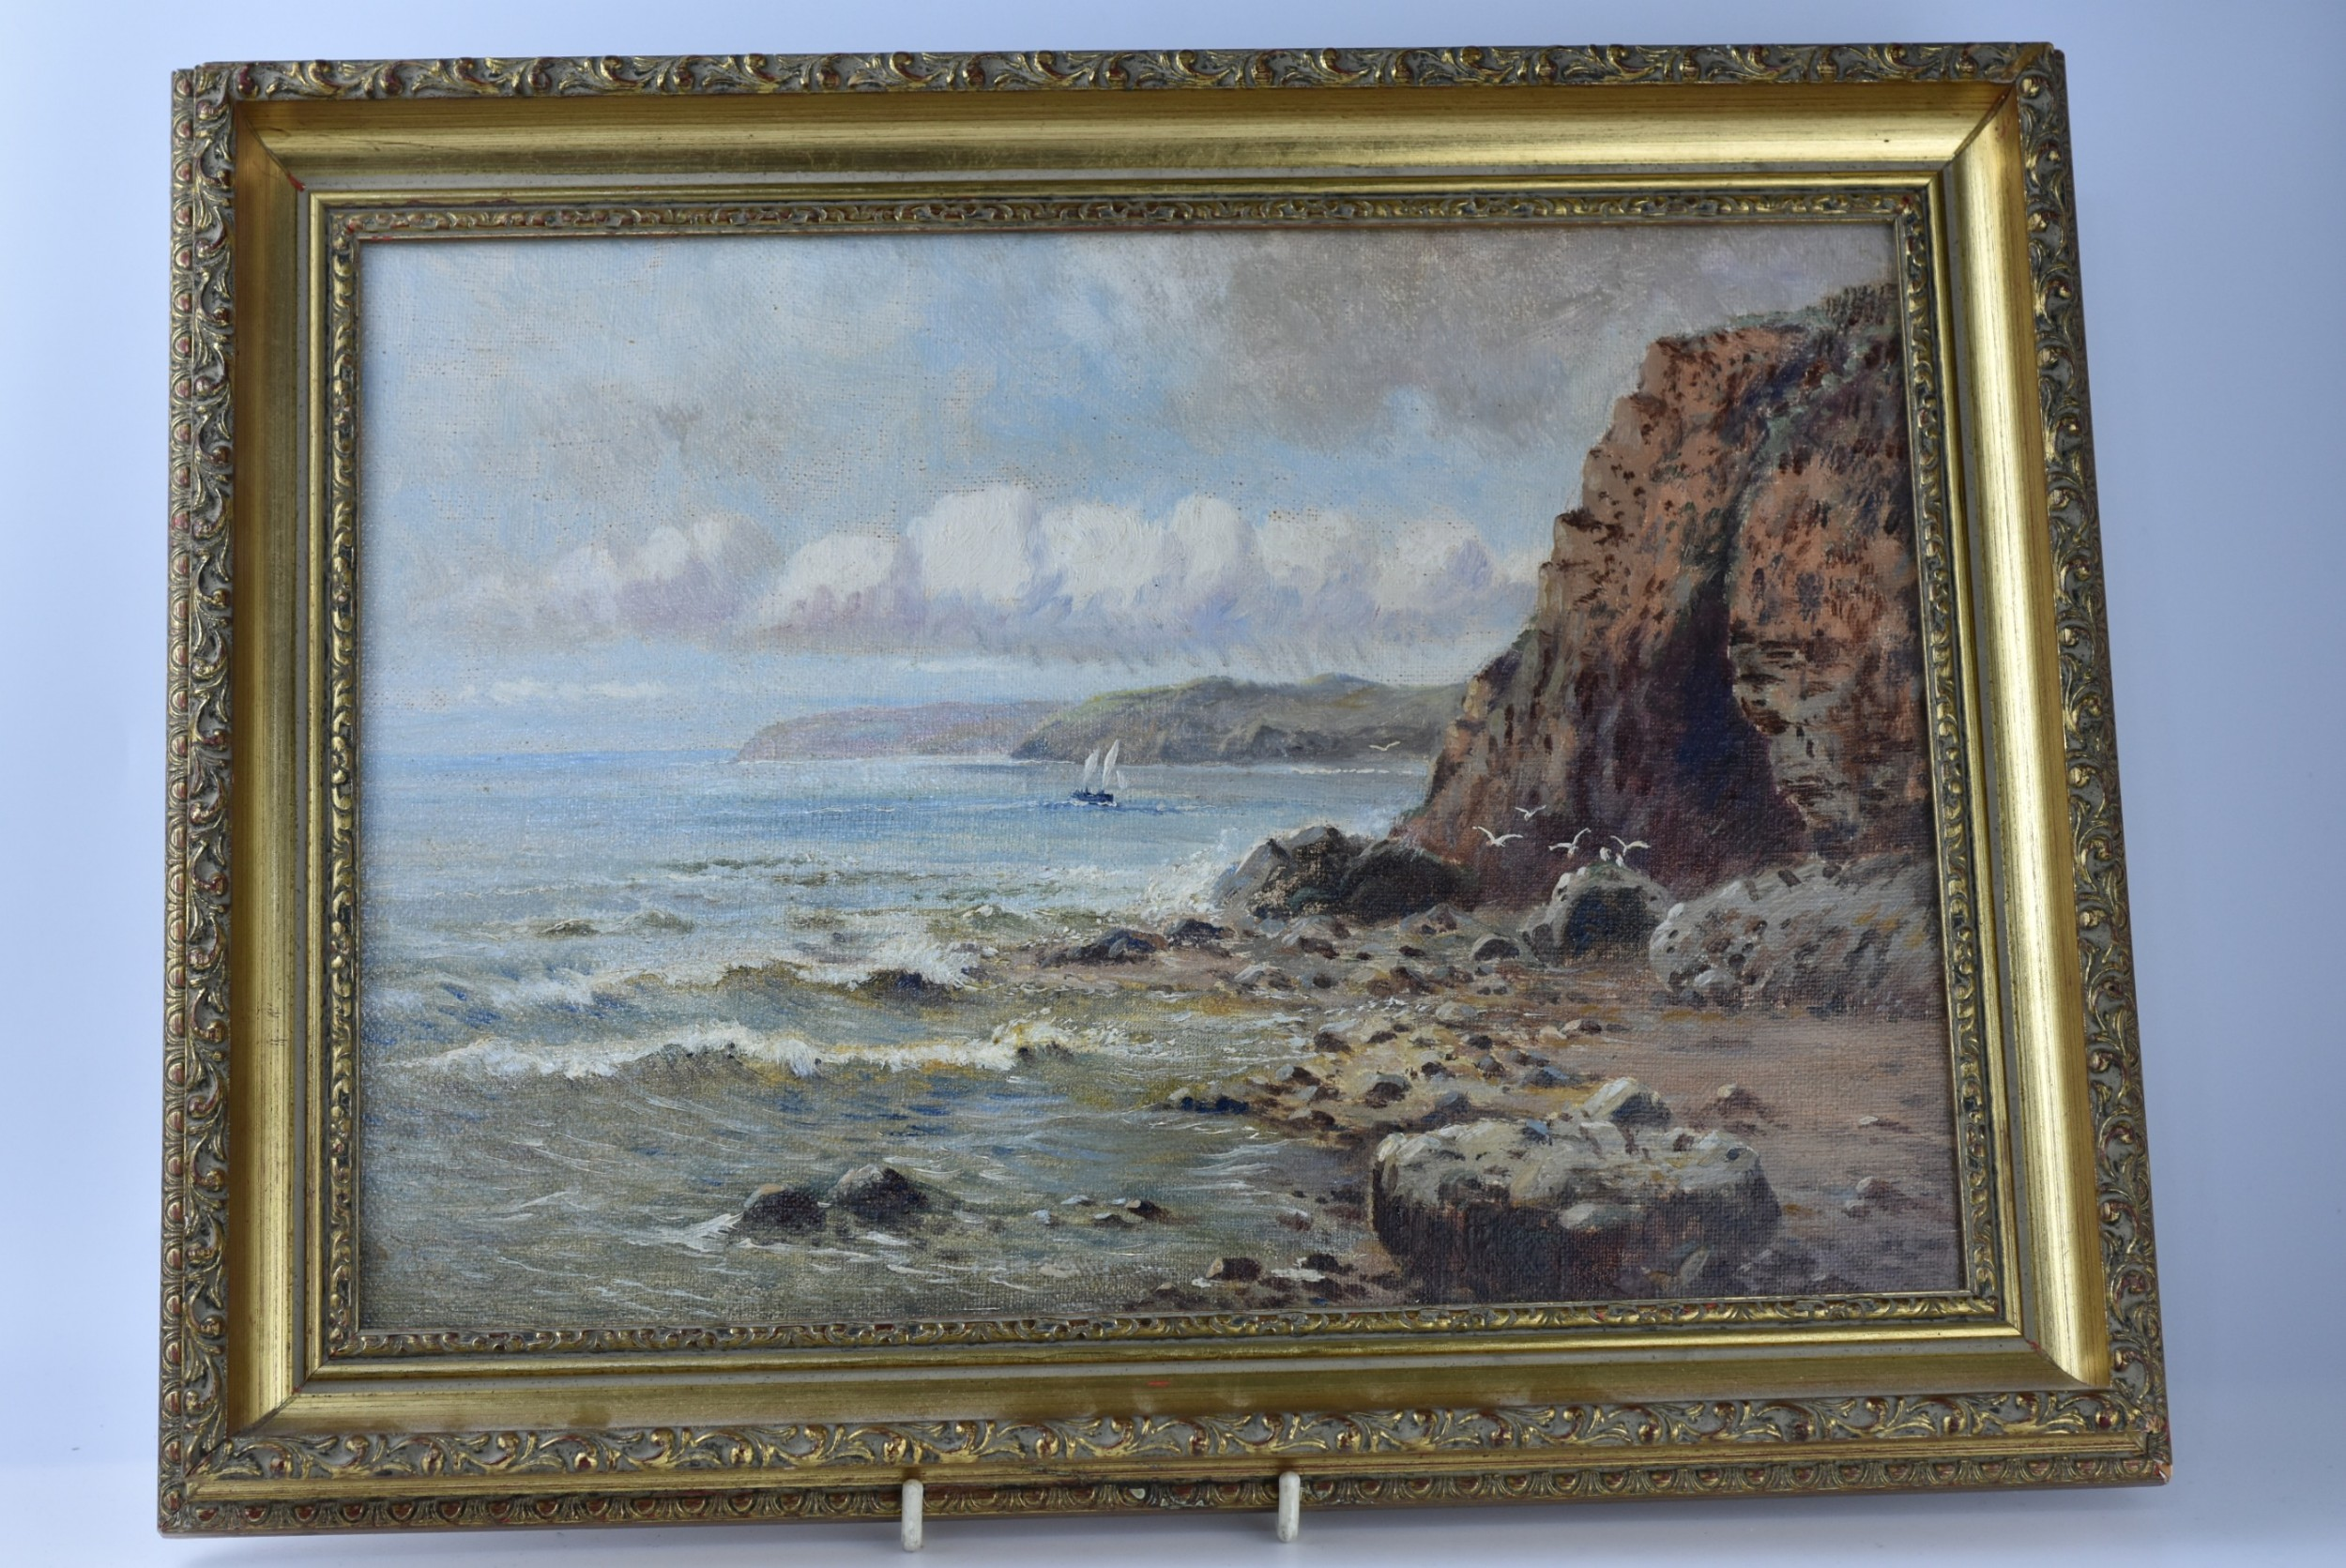 fine quality seascape oil on canvas c1900